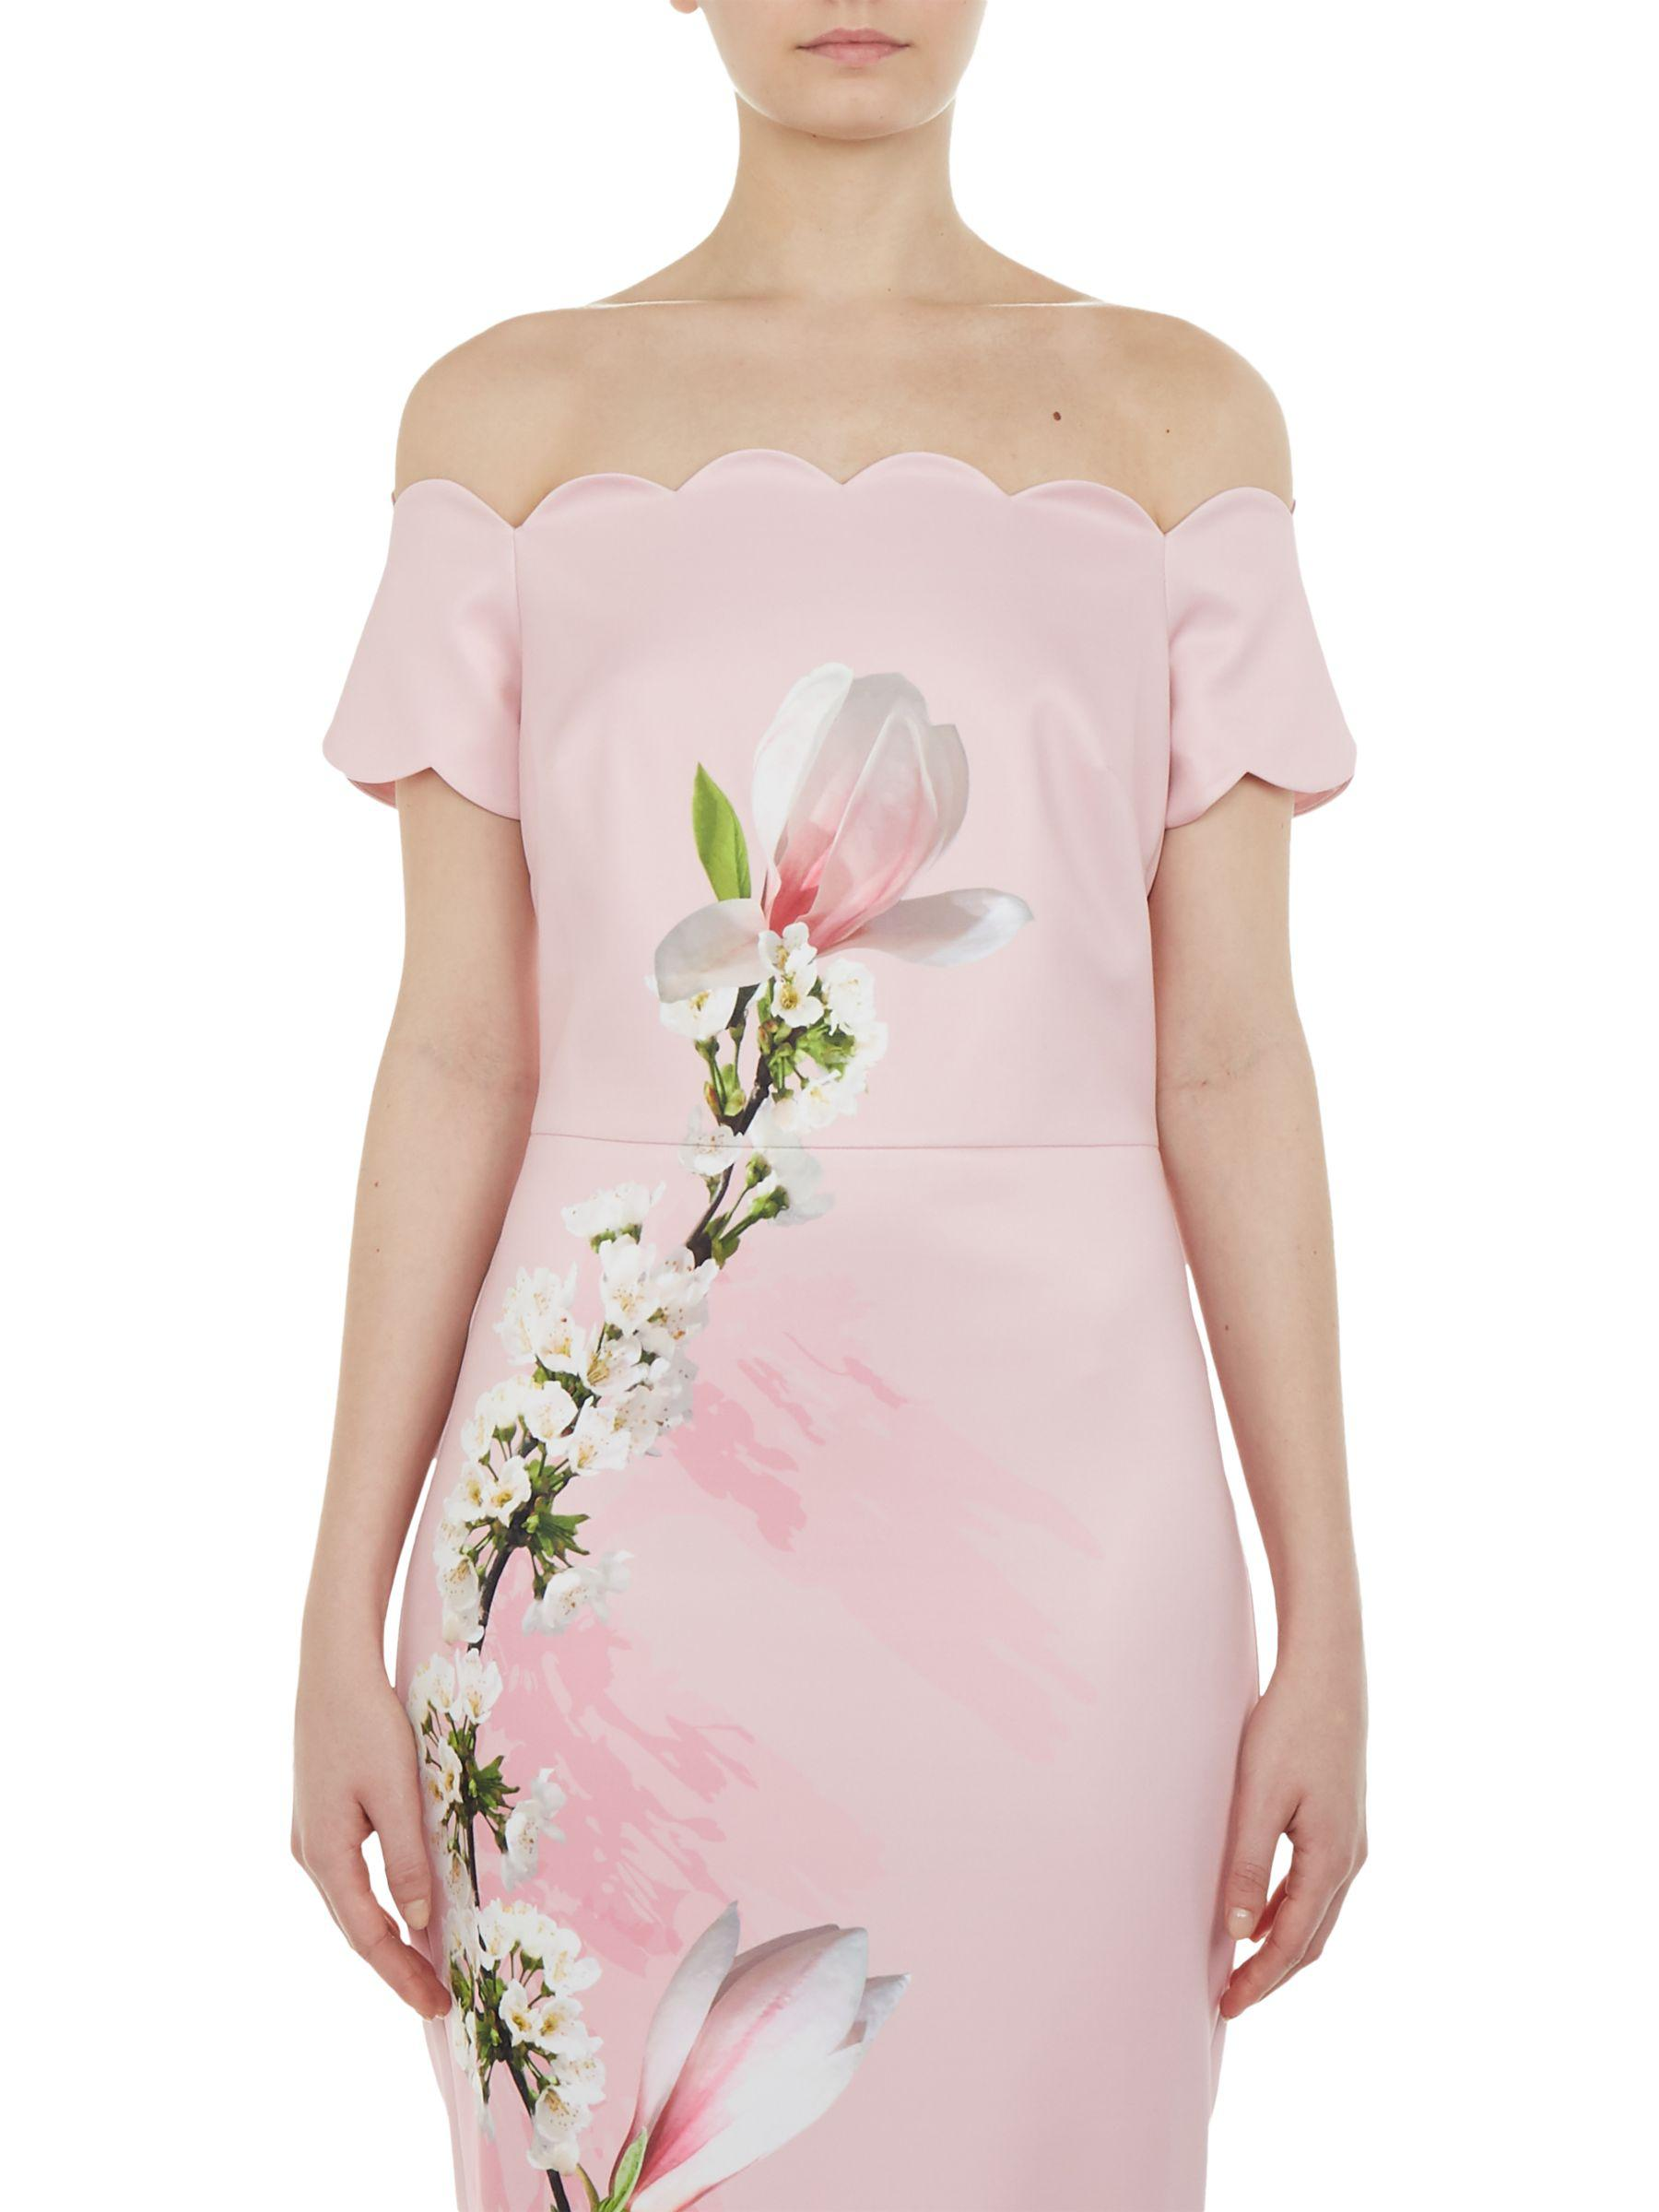 90e61481c17f86 Ted Baker Olyva Scalloped Bodycon Dress in Pink - Lyst